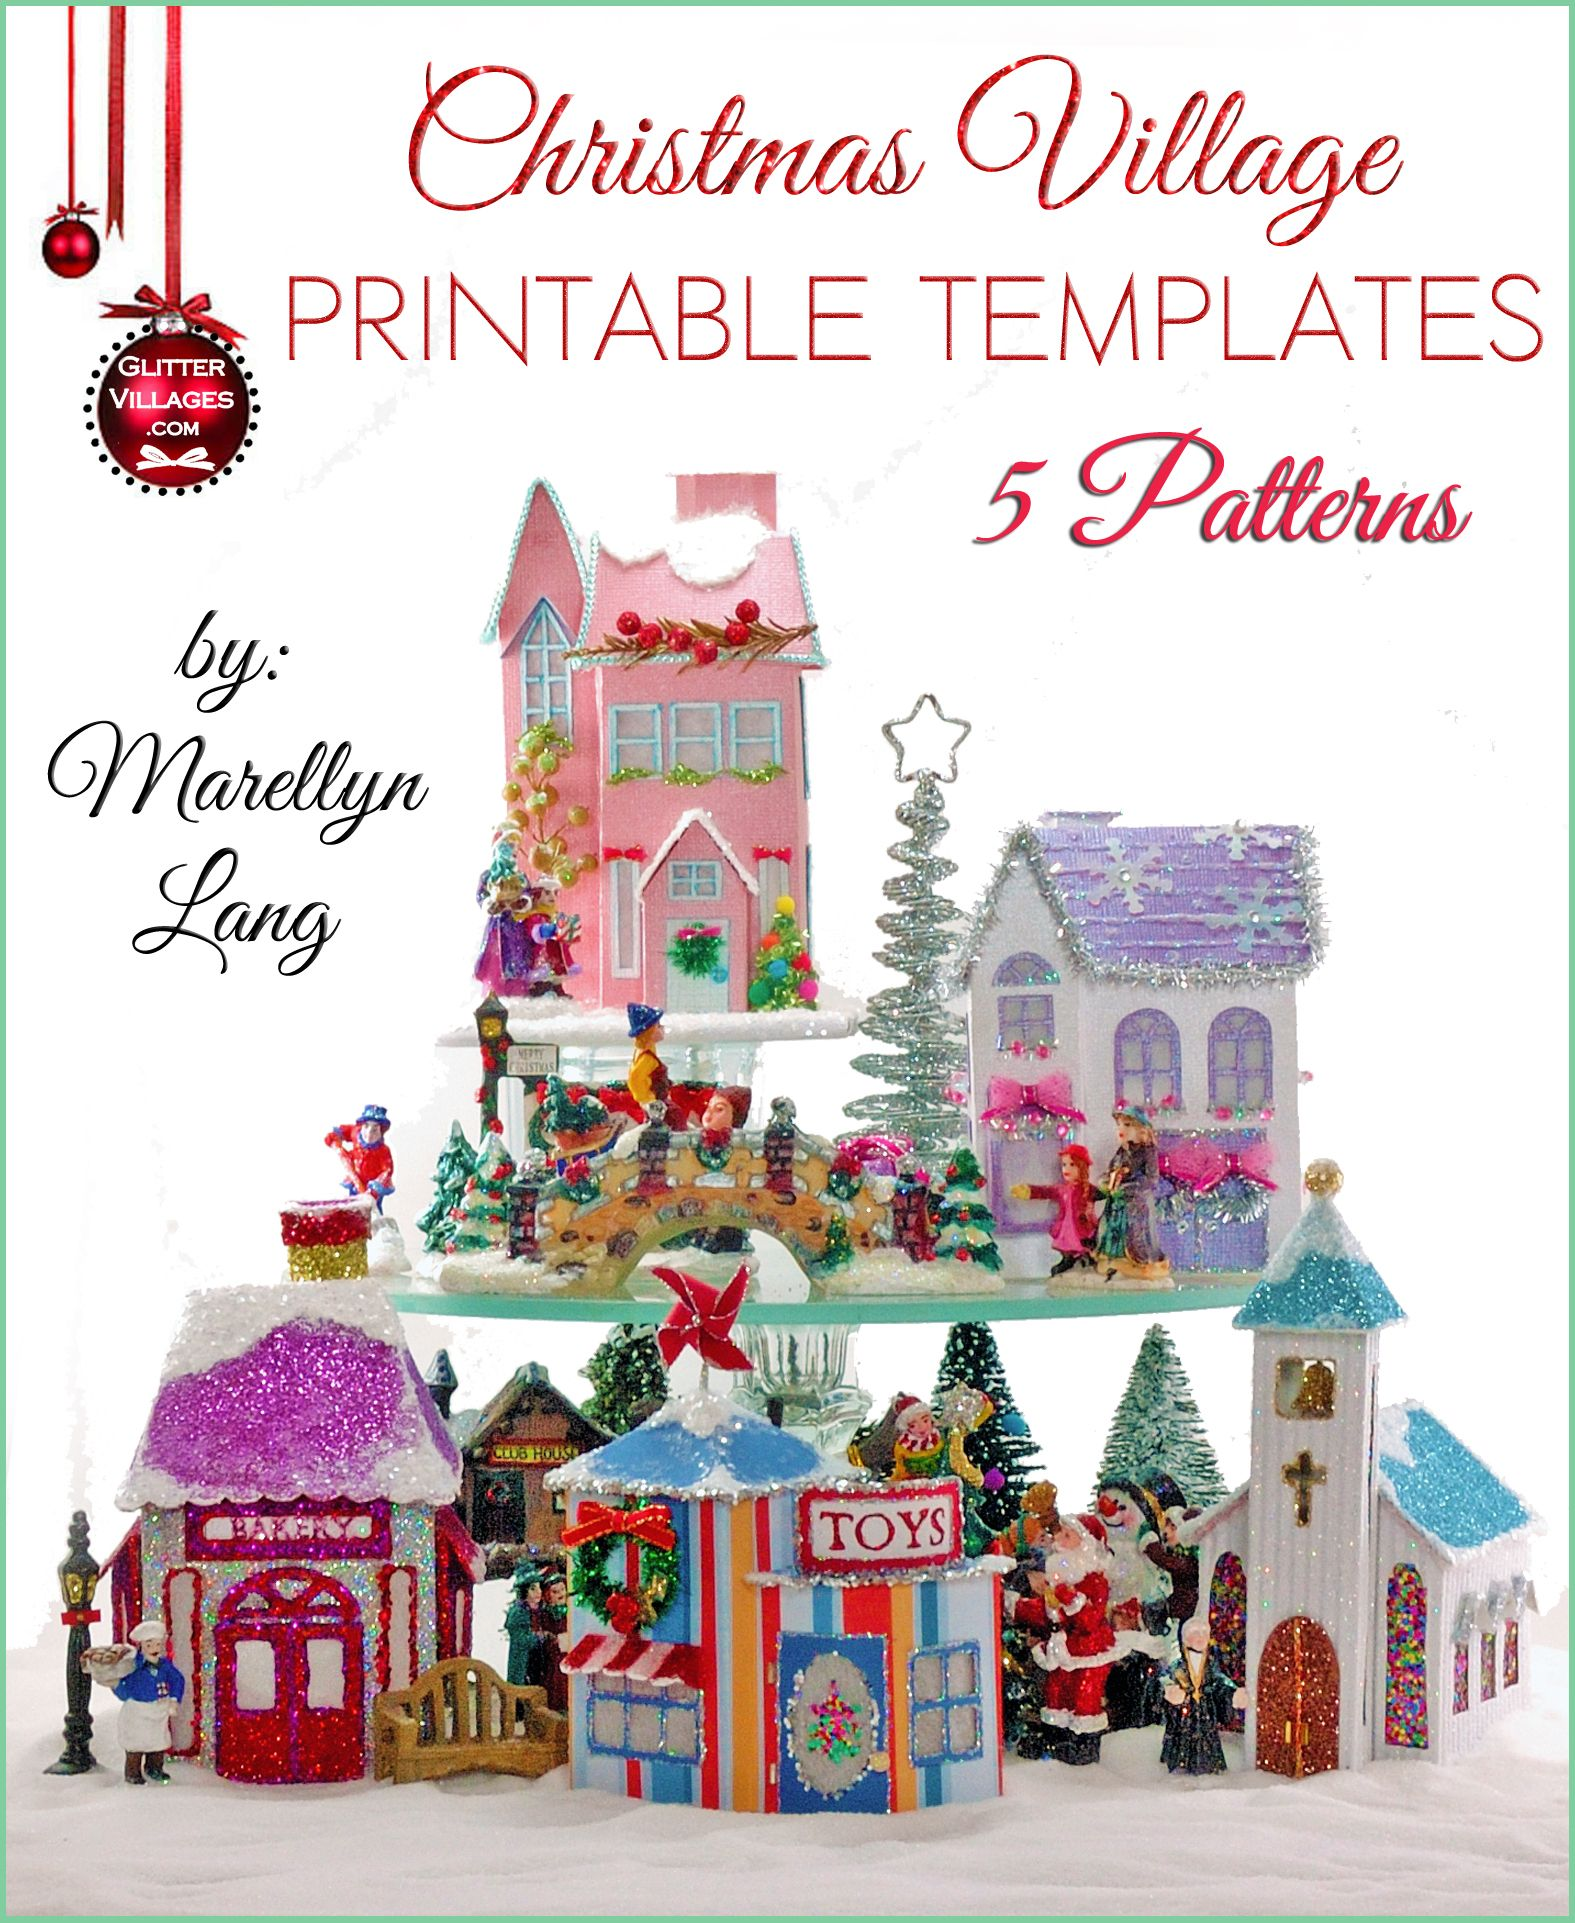 5 christmas village house templates to print diy paper 5 christmas village house templates to print diy paper similar to the nostalgic